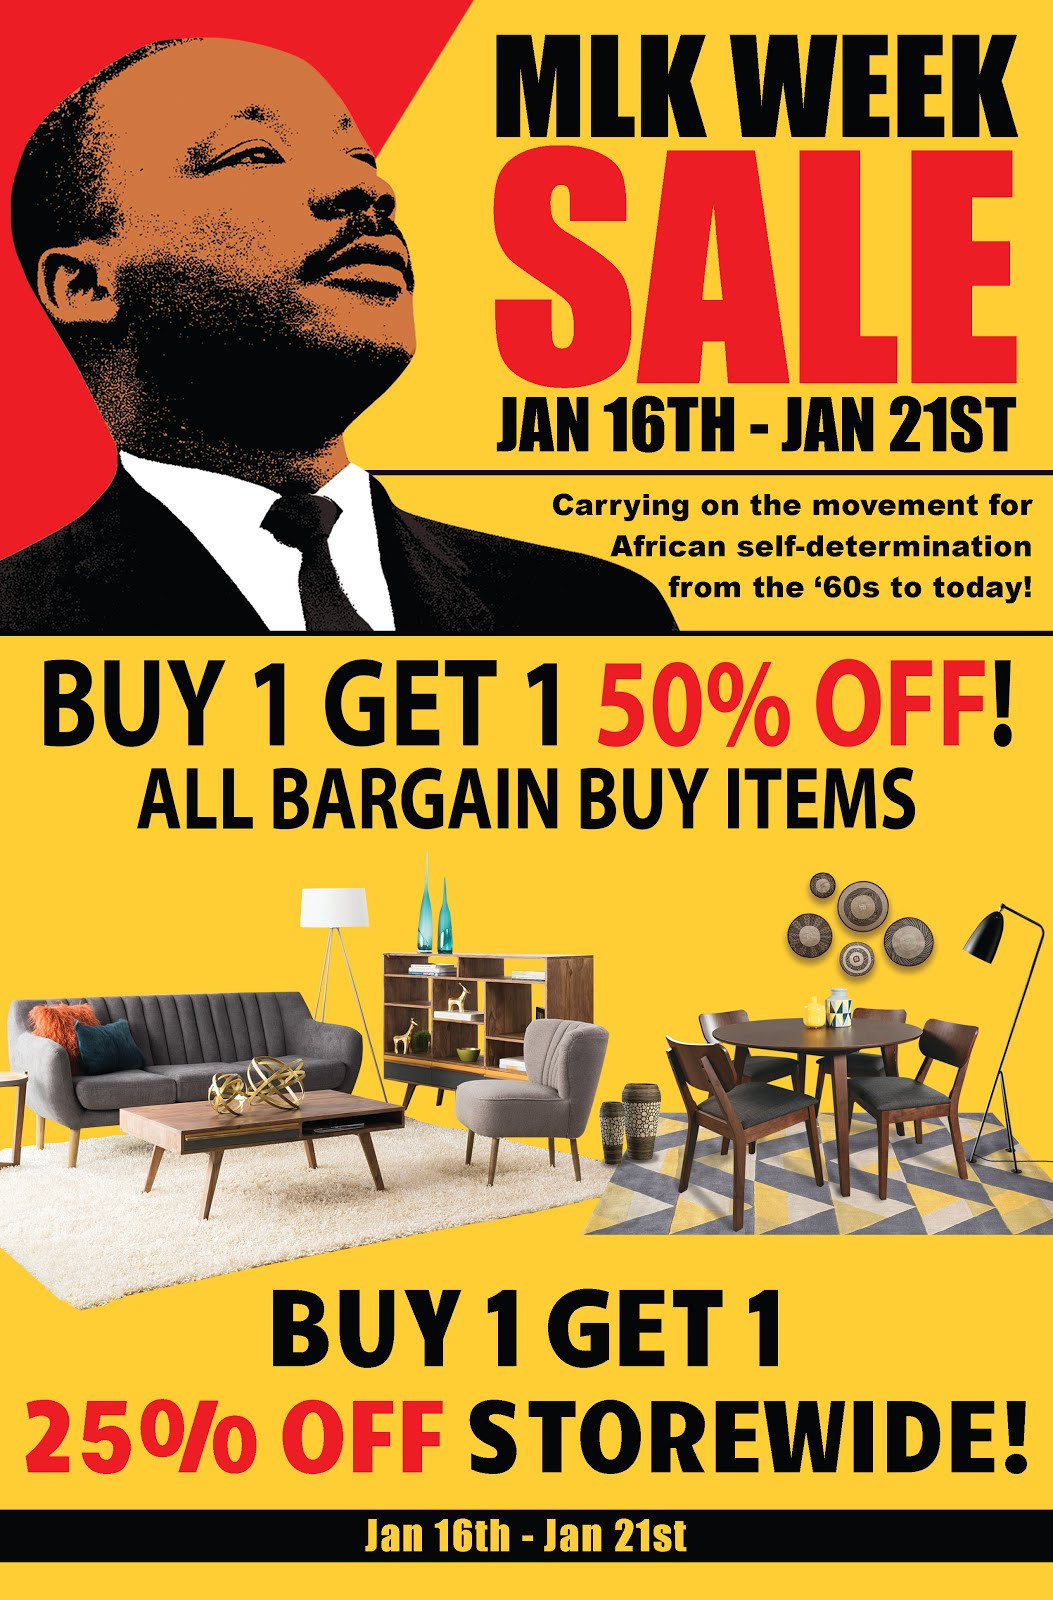 MLK Week Sale